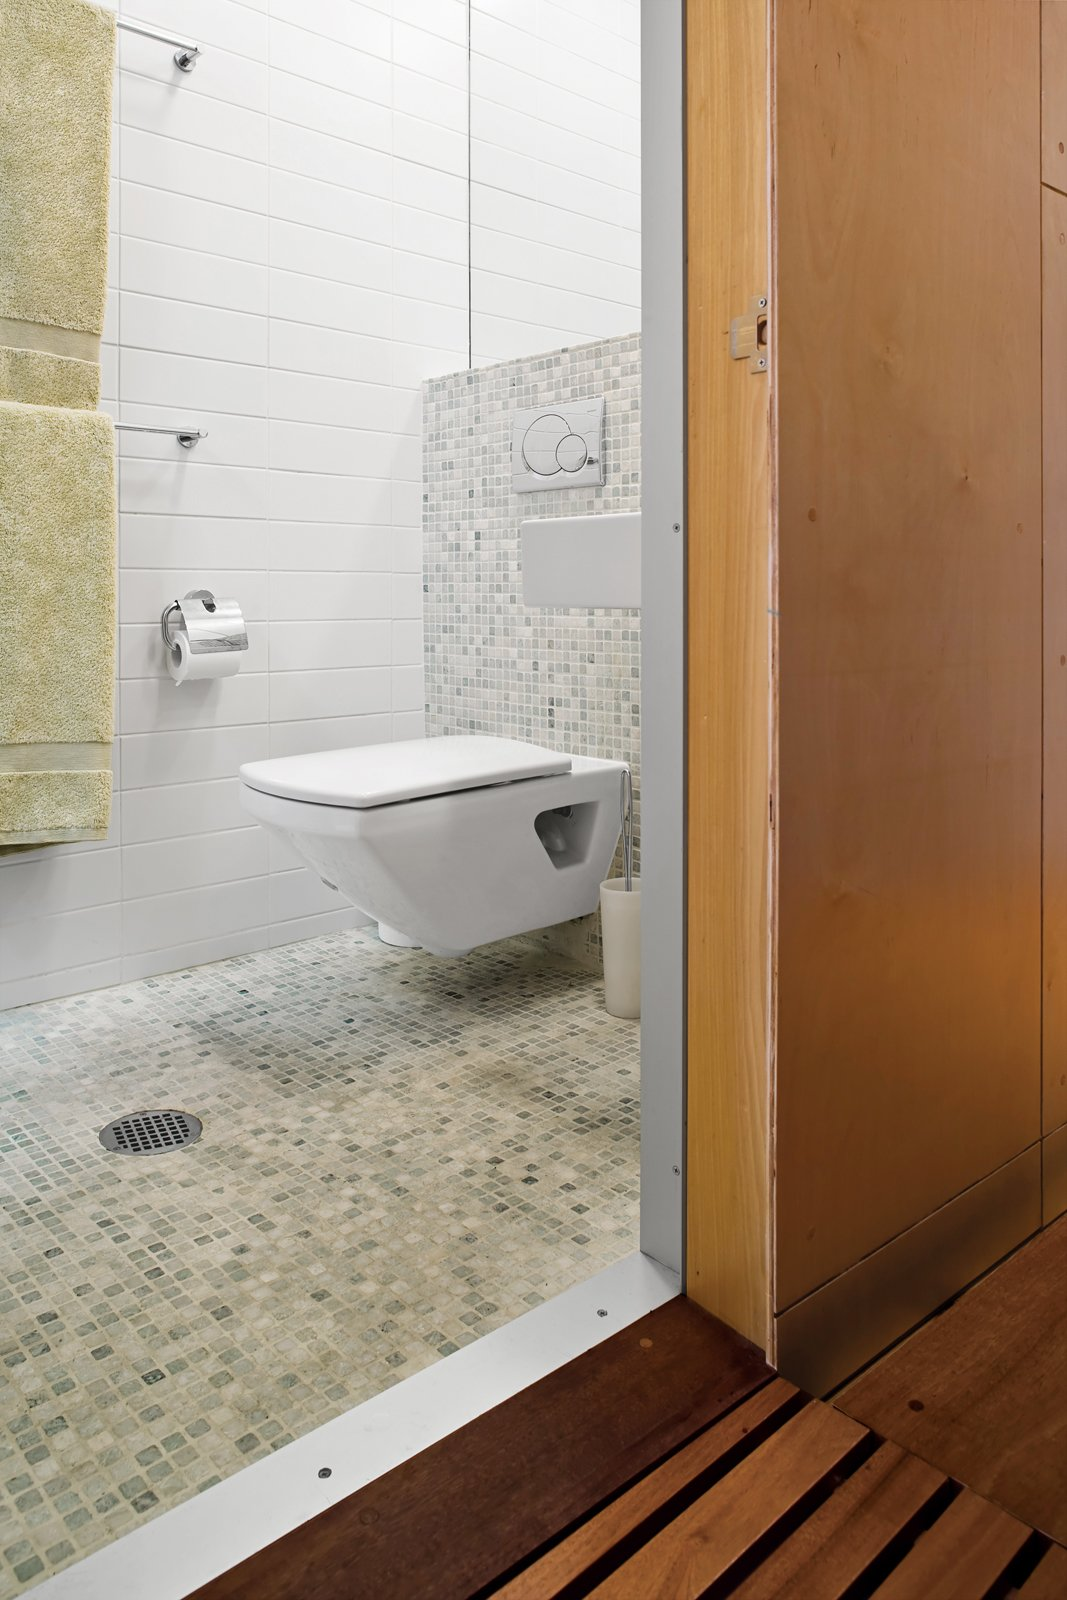 A skylight in the compact bathroom opens the space, and green tiles give the room a spa-like feel. Tips for Tiny Bathrooms - Photo 13 of 13